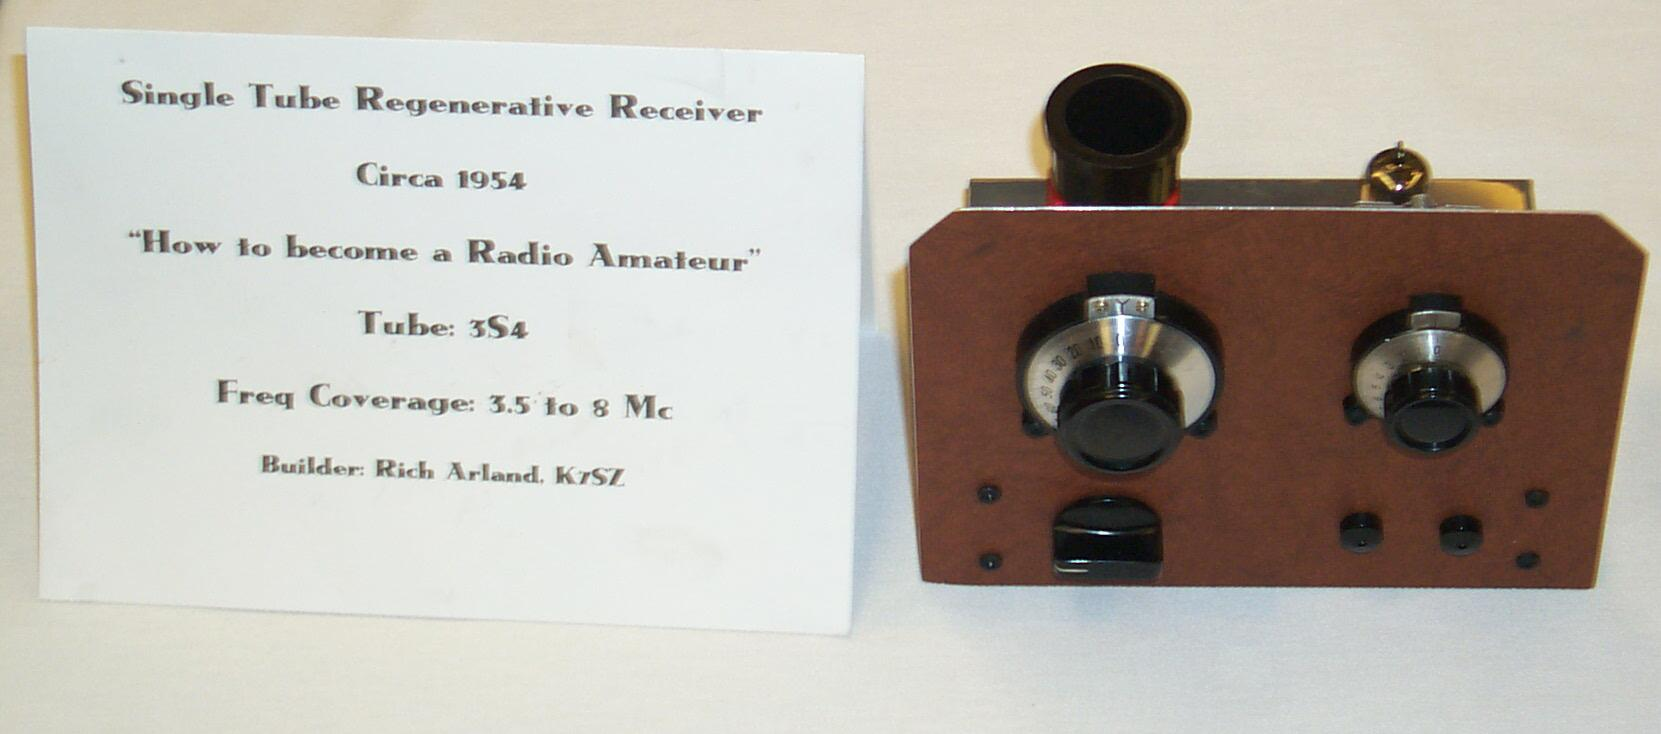 Atlanticon 2003 Qrp Forum Recap The Radio Builder Mw Receiverreflexive Radio2t Low Res High